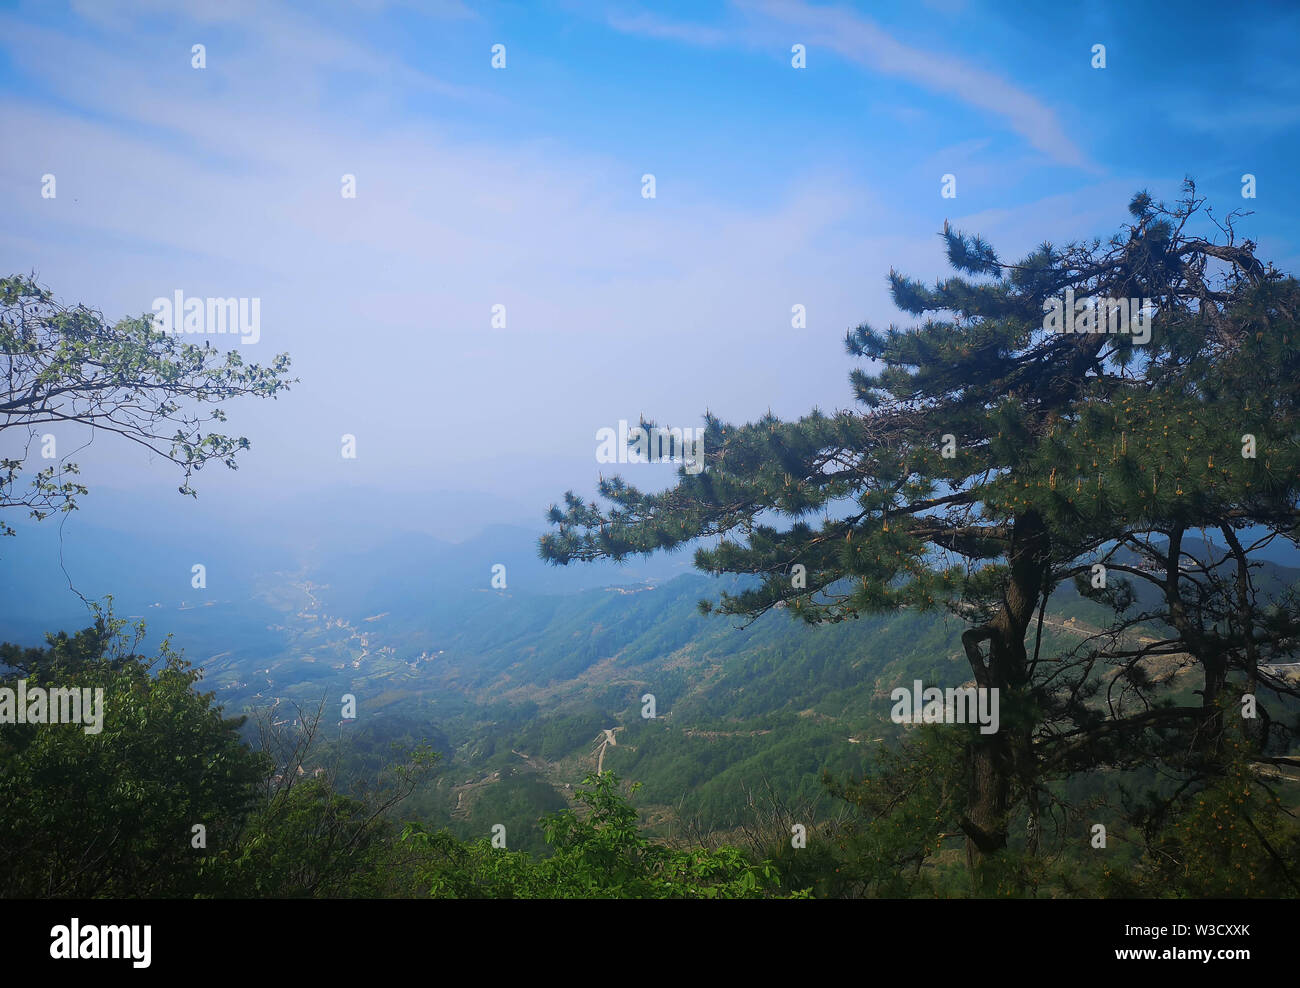 Beautiful mountain with blue sky, It's name The turtle mountain , located at the Ma Cheng city (Special name in Chinese language), Hubei province. - Stock Image